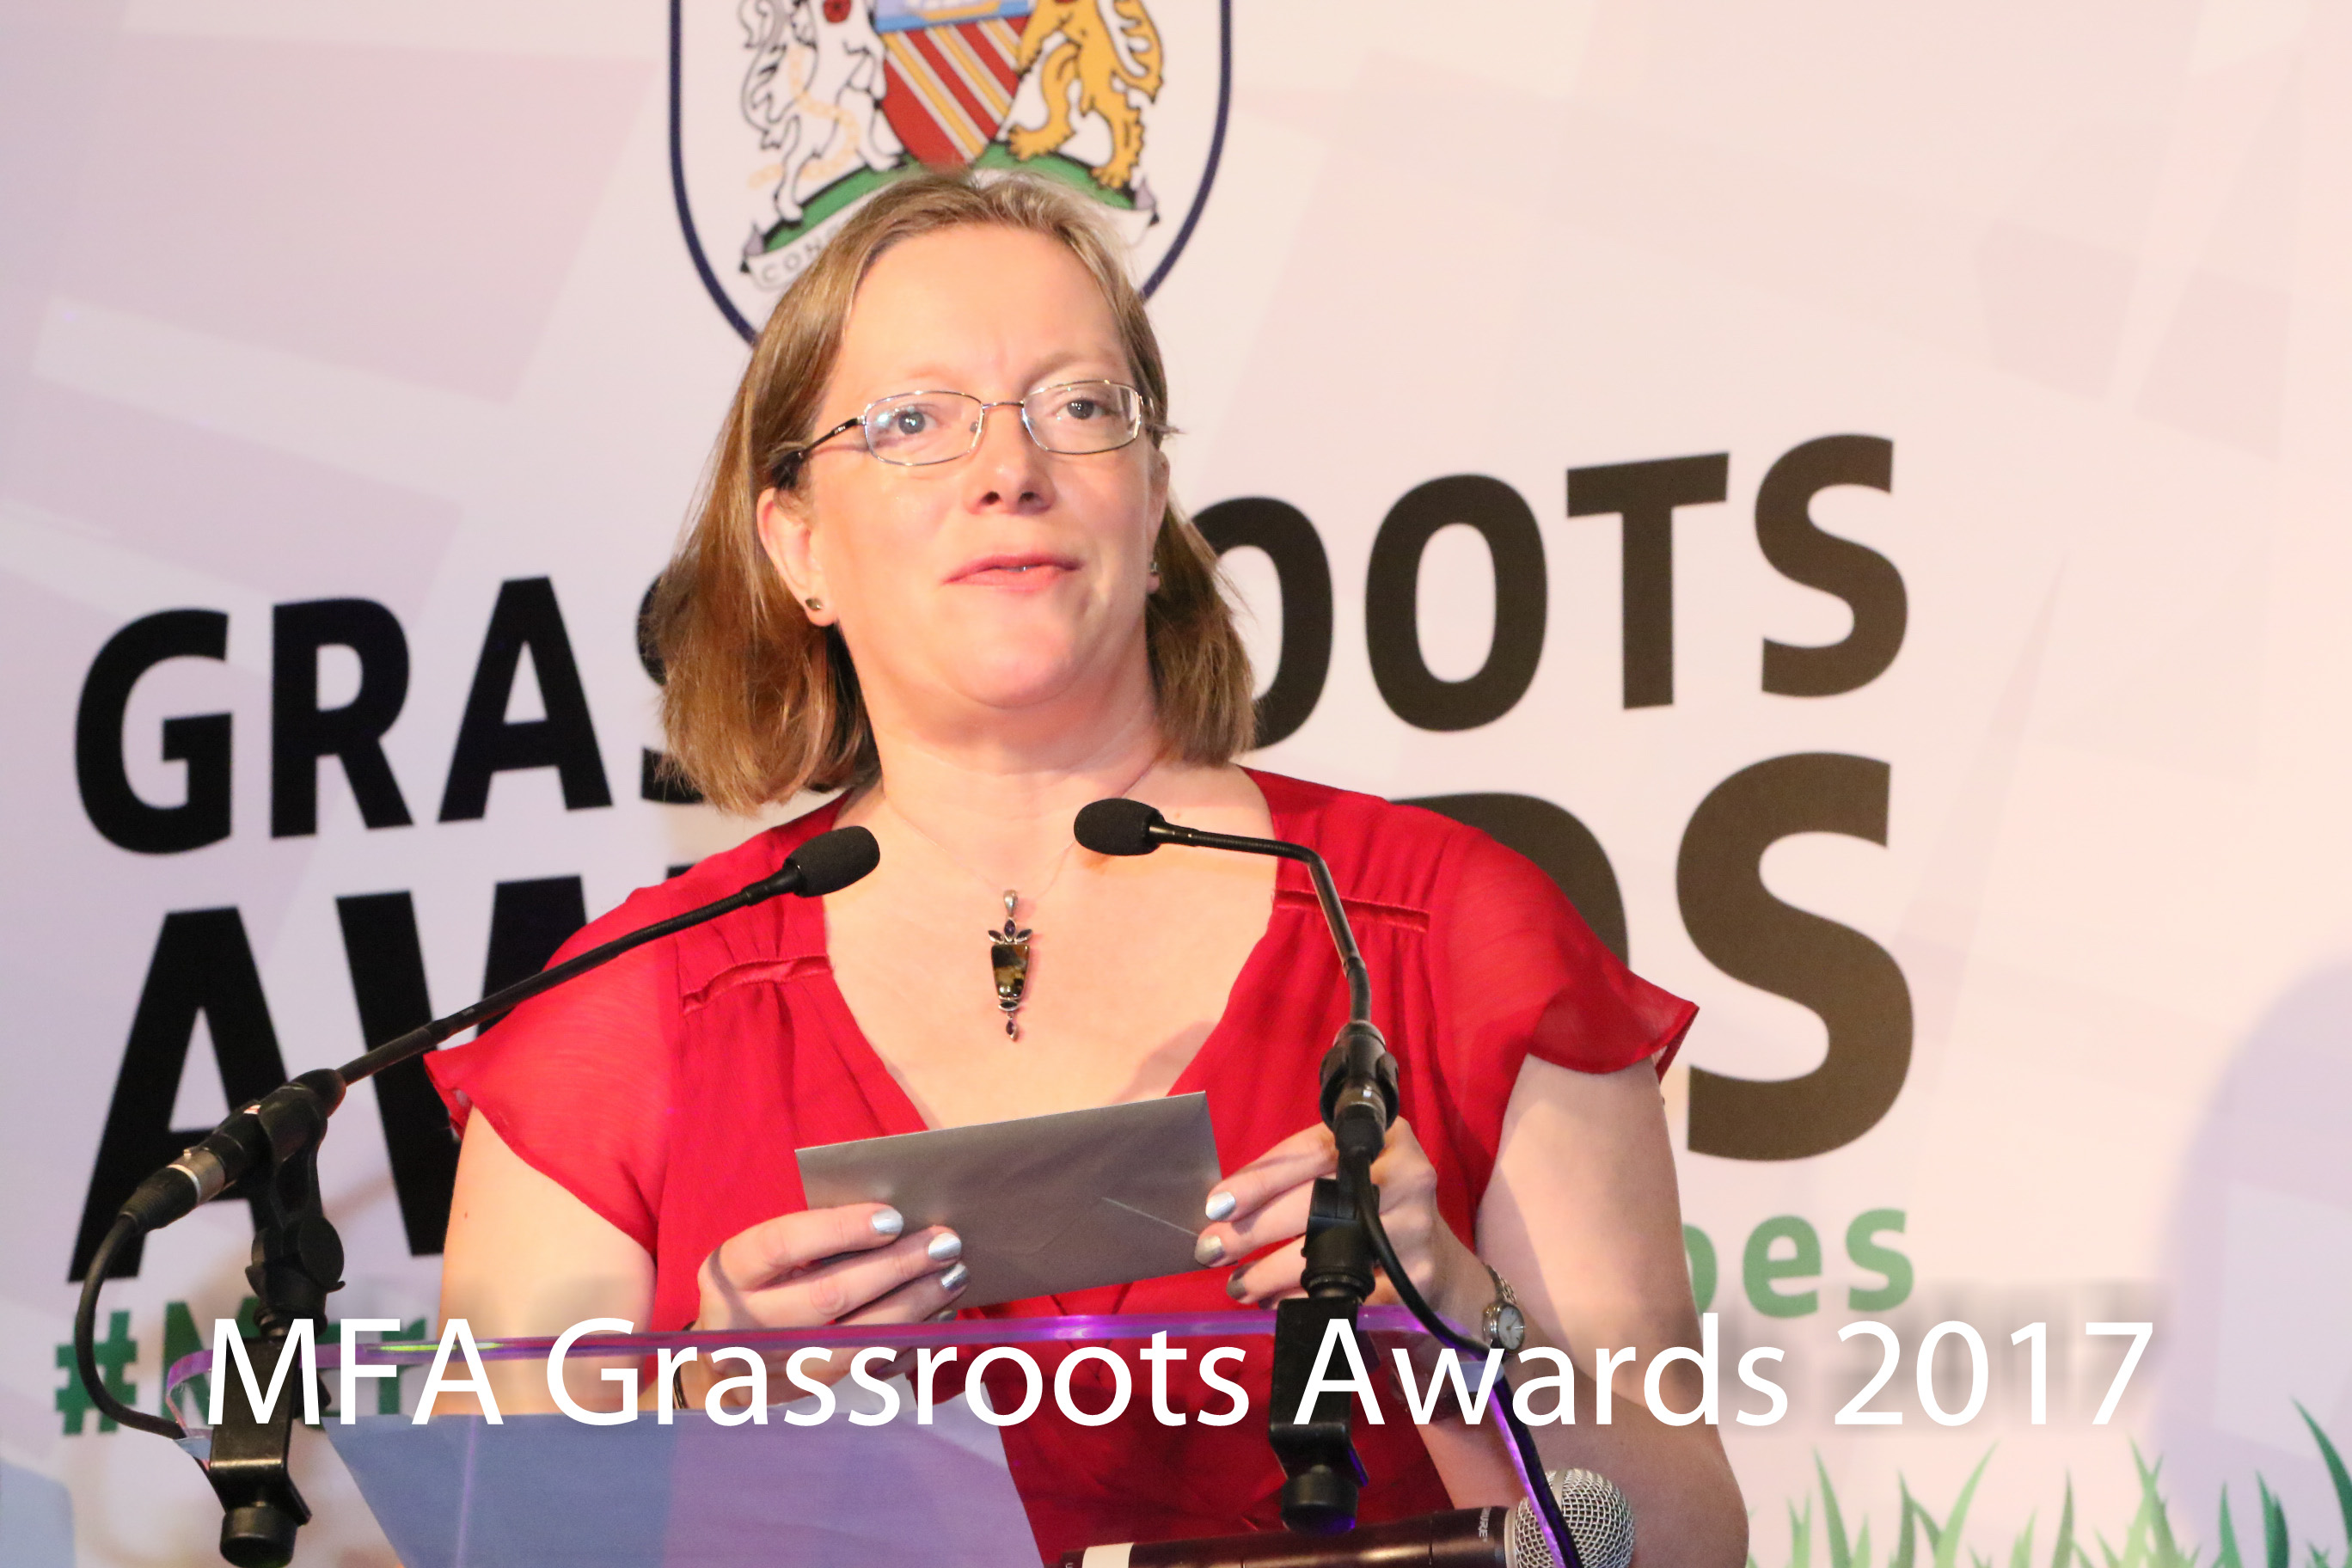 Kate Ramsey at the 2017 Manchester FA Grassroots Awards.